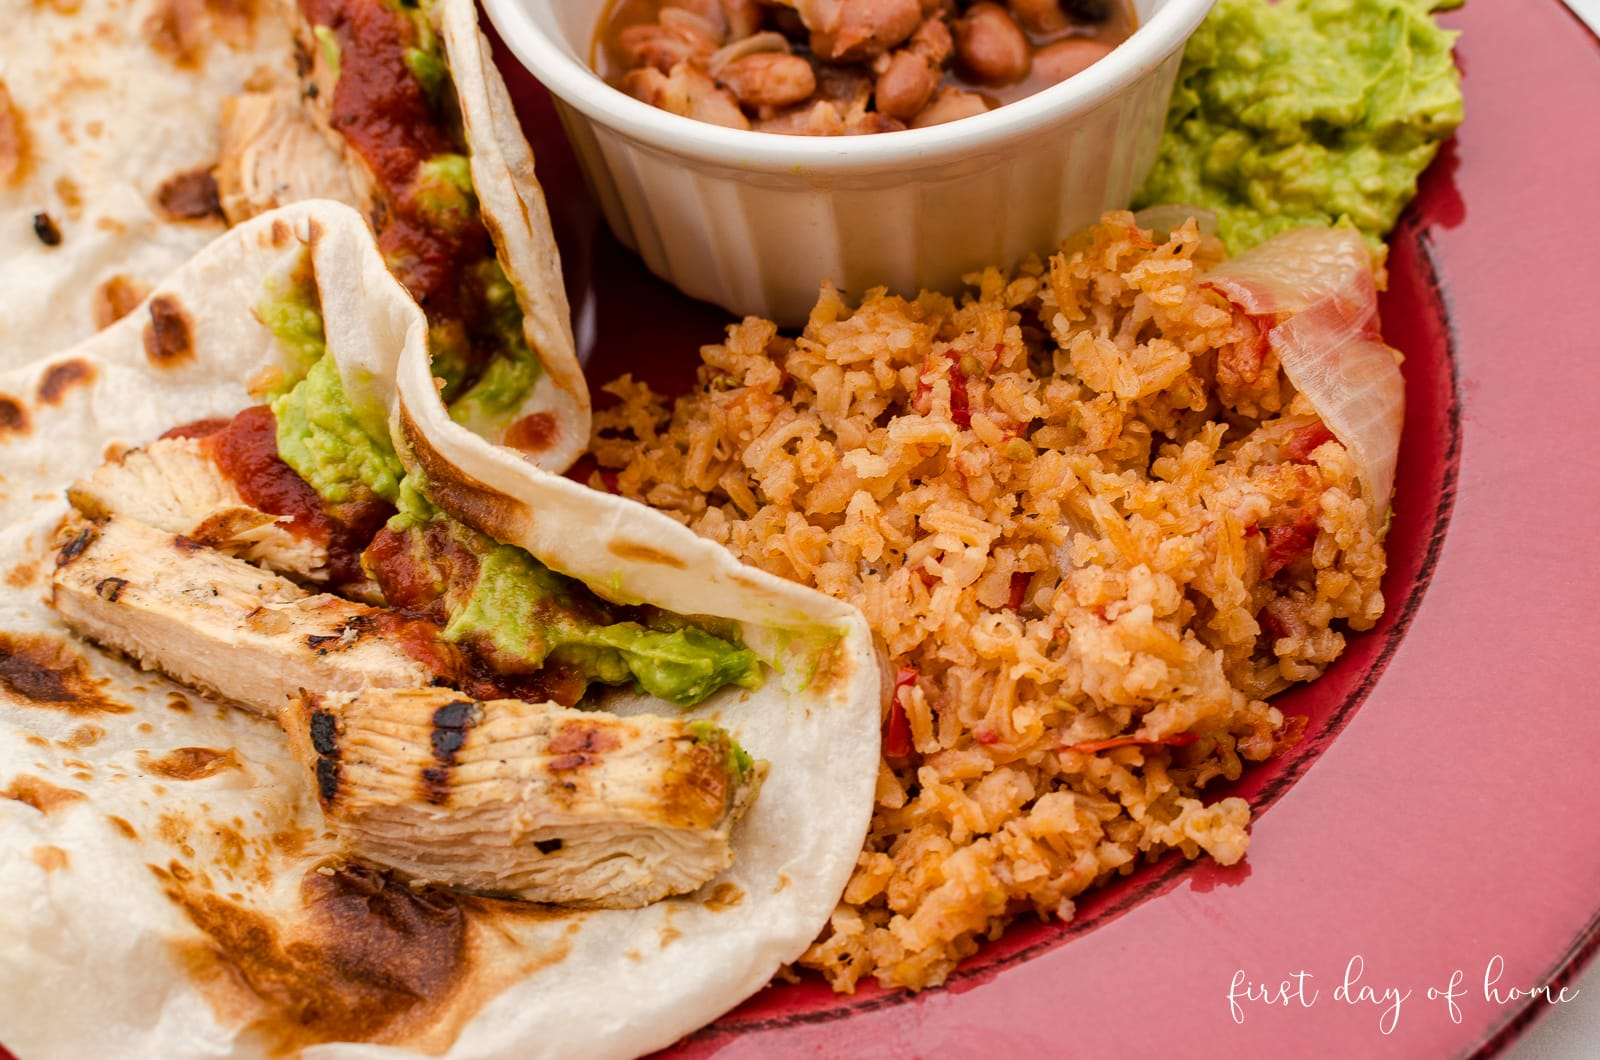 Close up of Spanish rice on plate with chicken fajita tacos and charro beans